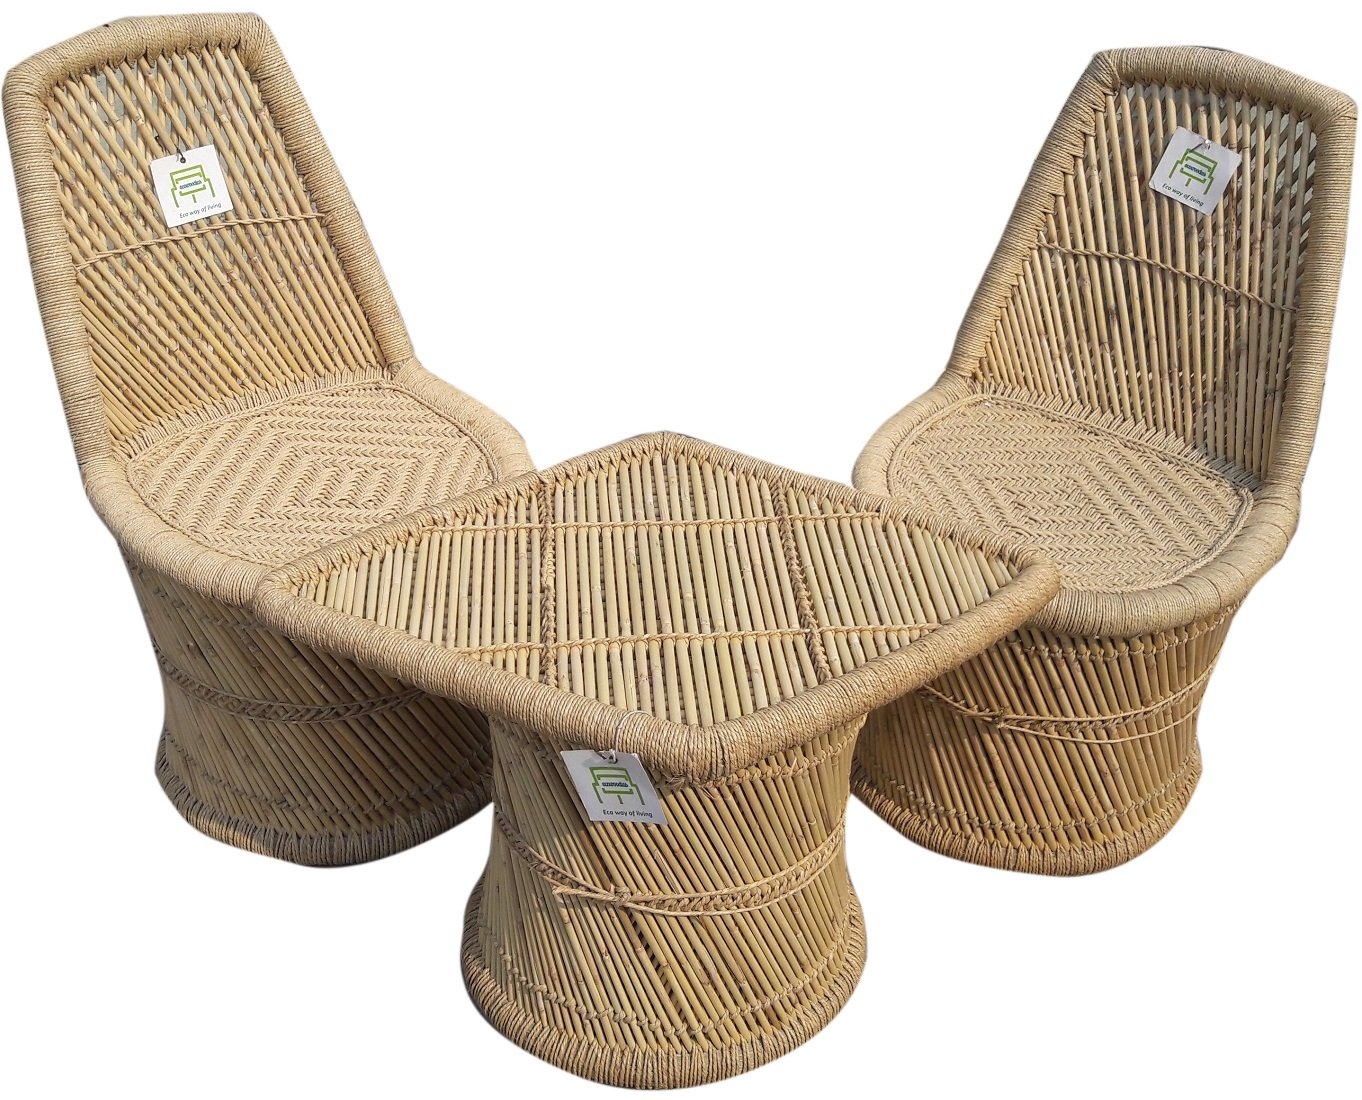 Ecowoodies bamboo nettle eco friendly handicraft cane wood furniture set 2 chairs and 1 table amazon in home kitchen